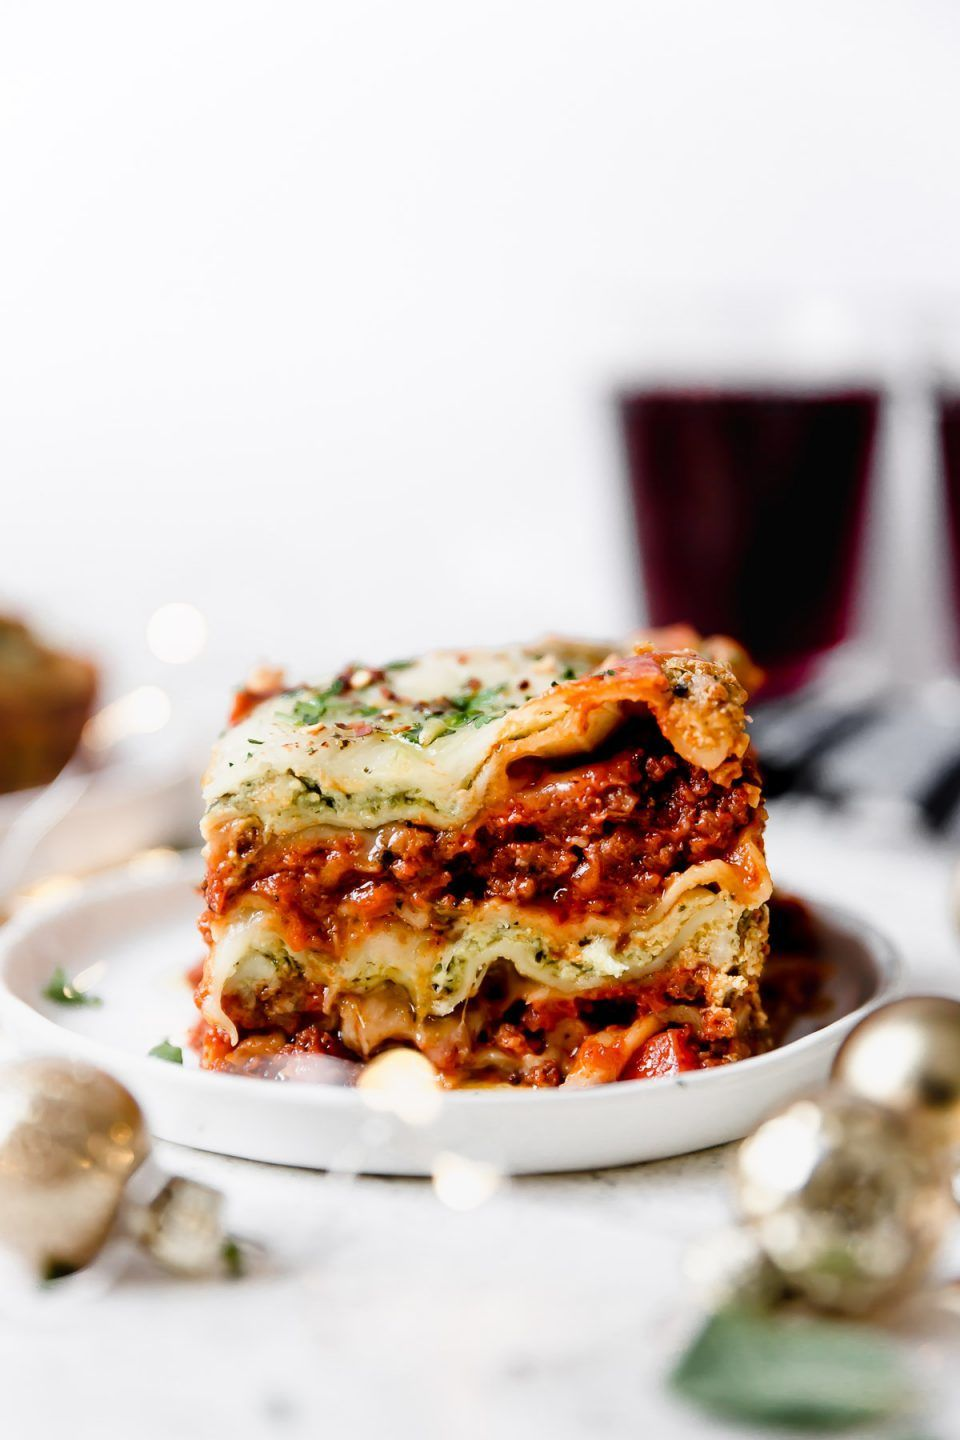 The most festive lasagna you'll ever meet: Christmas Eve Lasagna! A twist on classic lasagna bolognese, this lasagna boasts festive red & green layers of rich & hearty homemade bolognese sauce & basil pesto ricotta. Equally stunning & delicious, this Christmas Eve Lasagna is the perfect dish to make for any holiday dinner. #lasagnarecipe #classiclasagna #christmasdinner #christmasrecipes